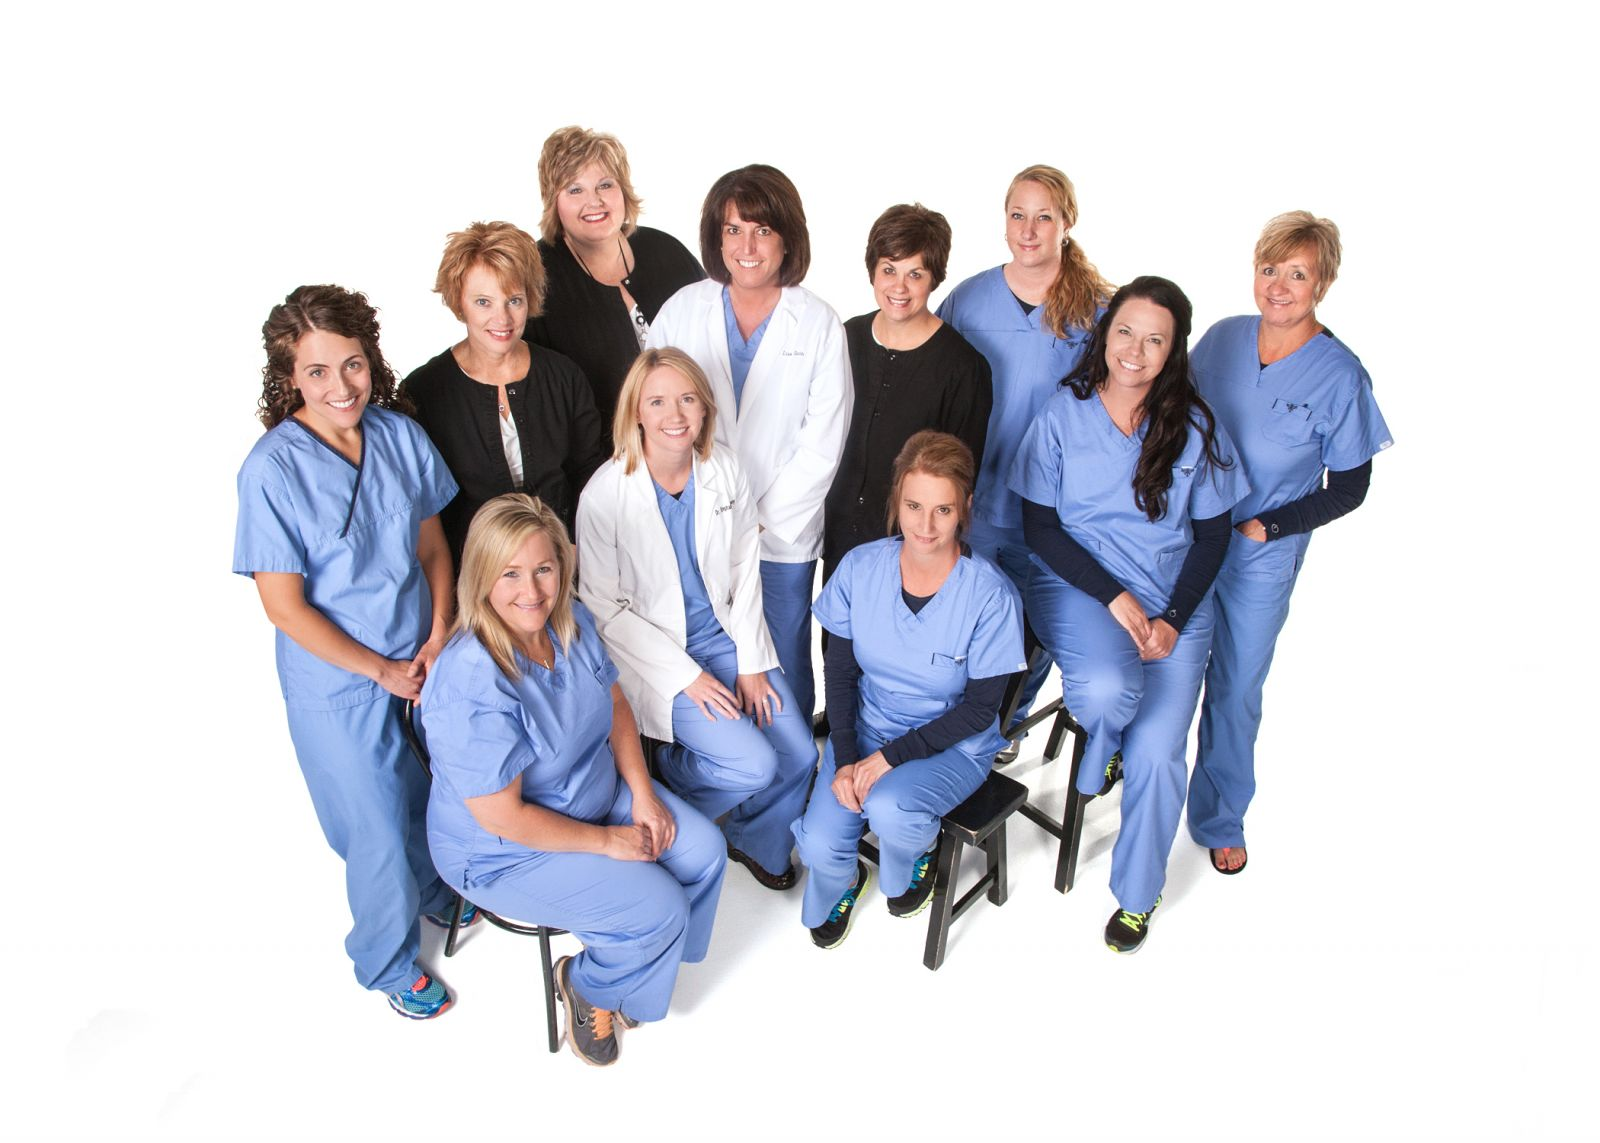 Image of dentists and dental team together in St. Joseph, MO